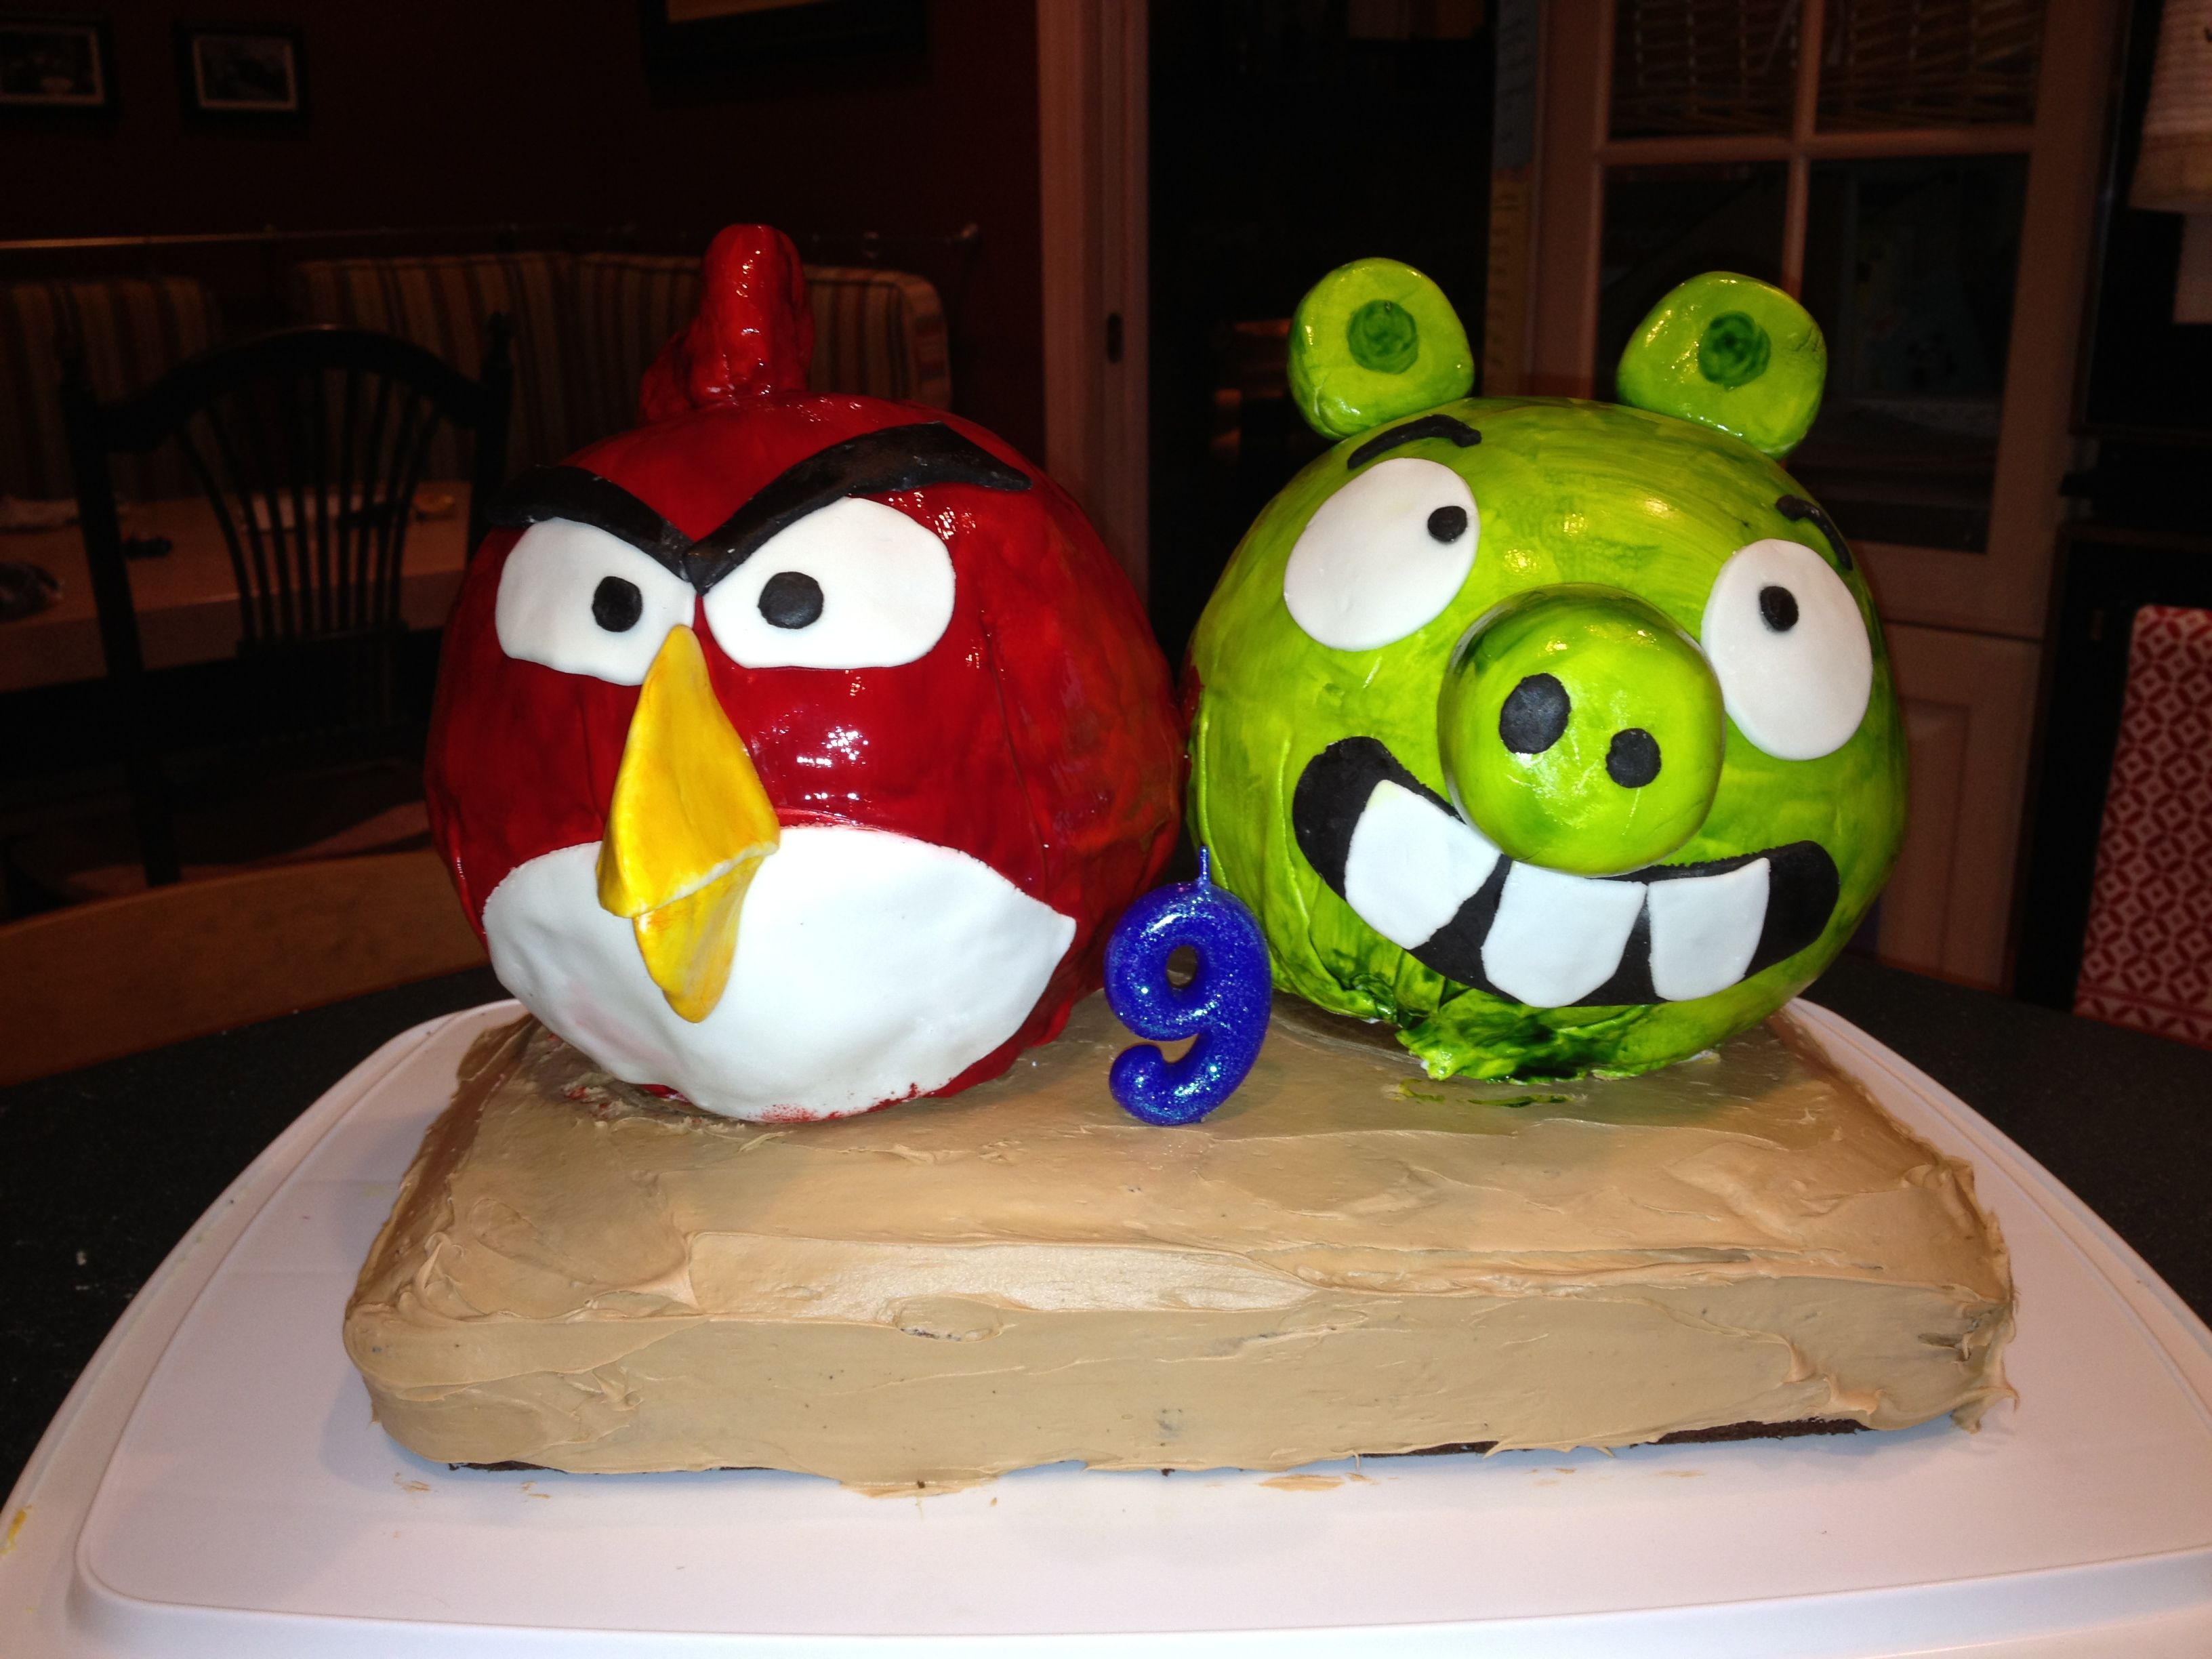 Coolest Angry Birds Birthday Cake... This website is the Pinterest of birthday cake ideas